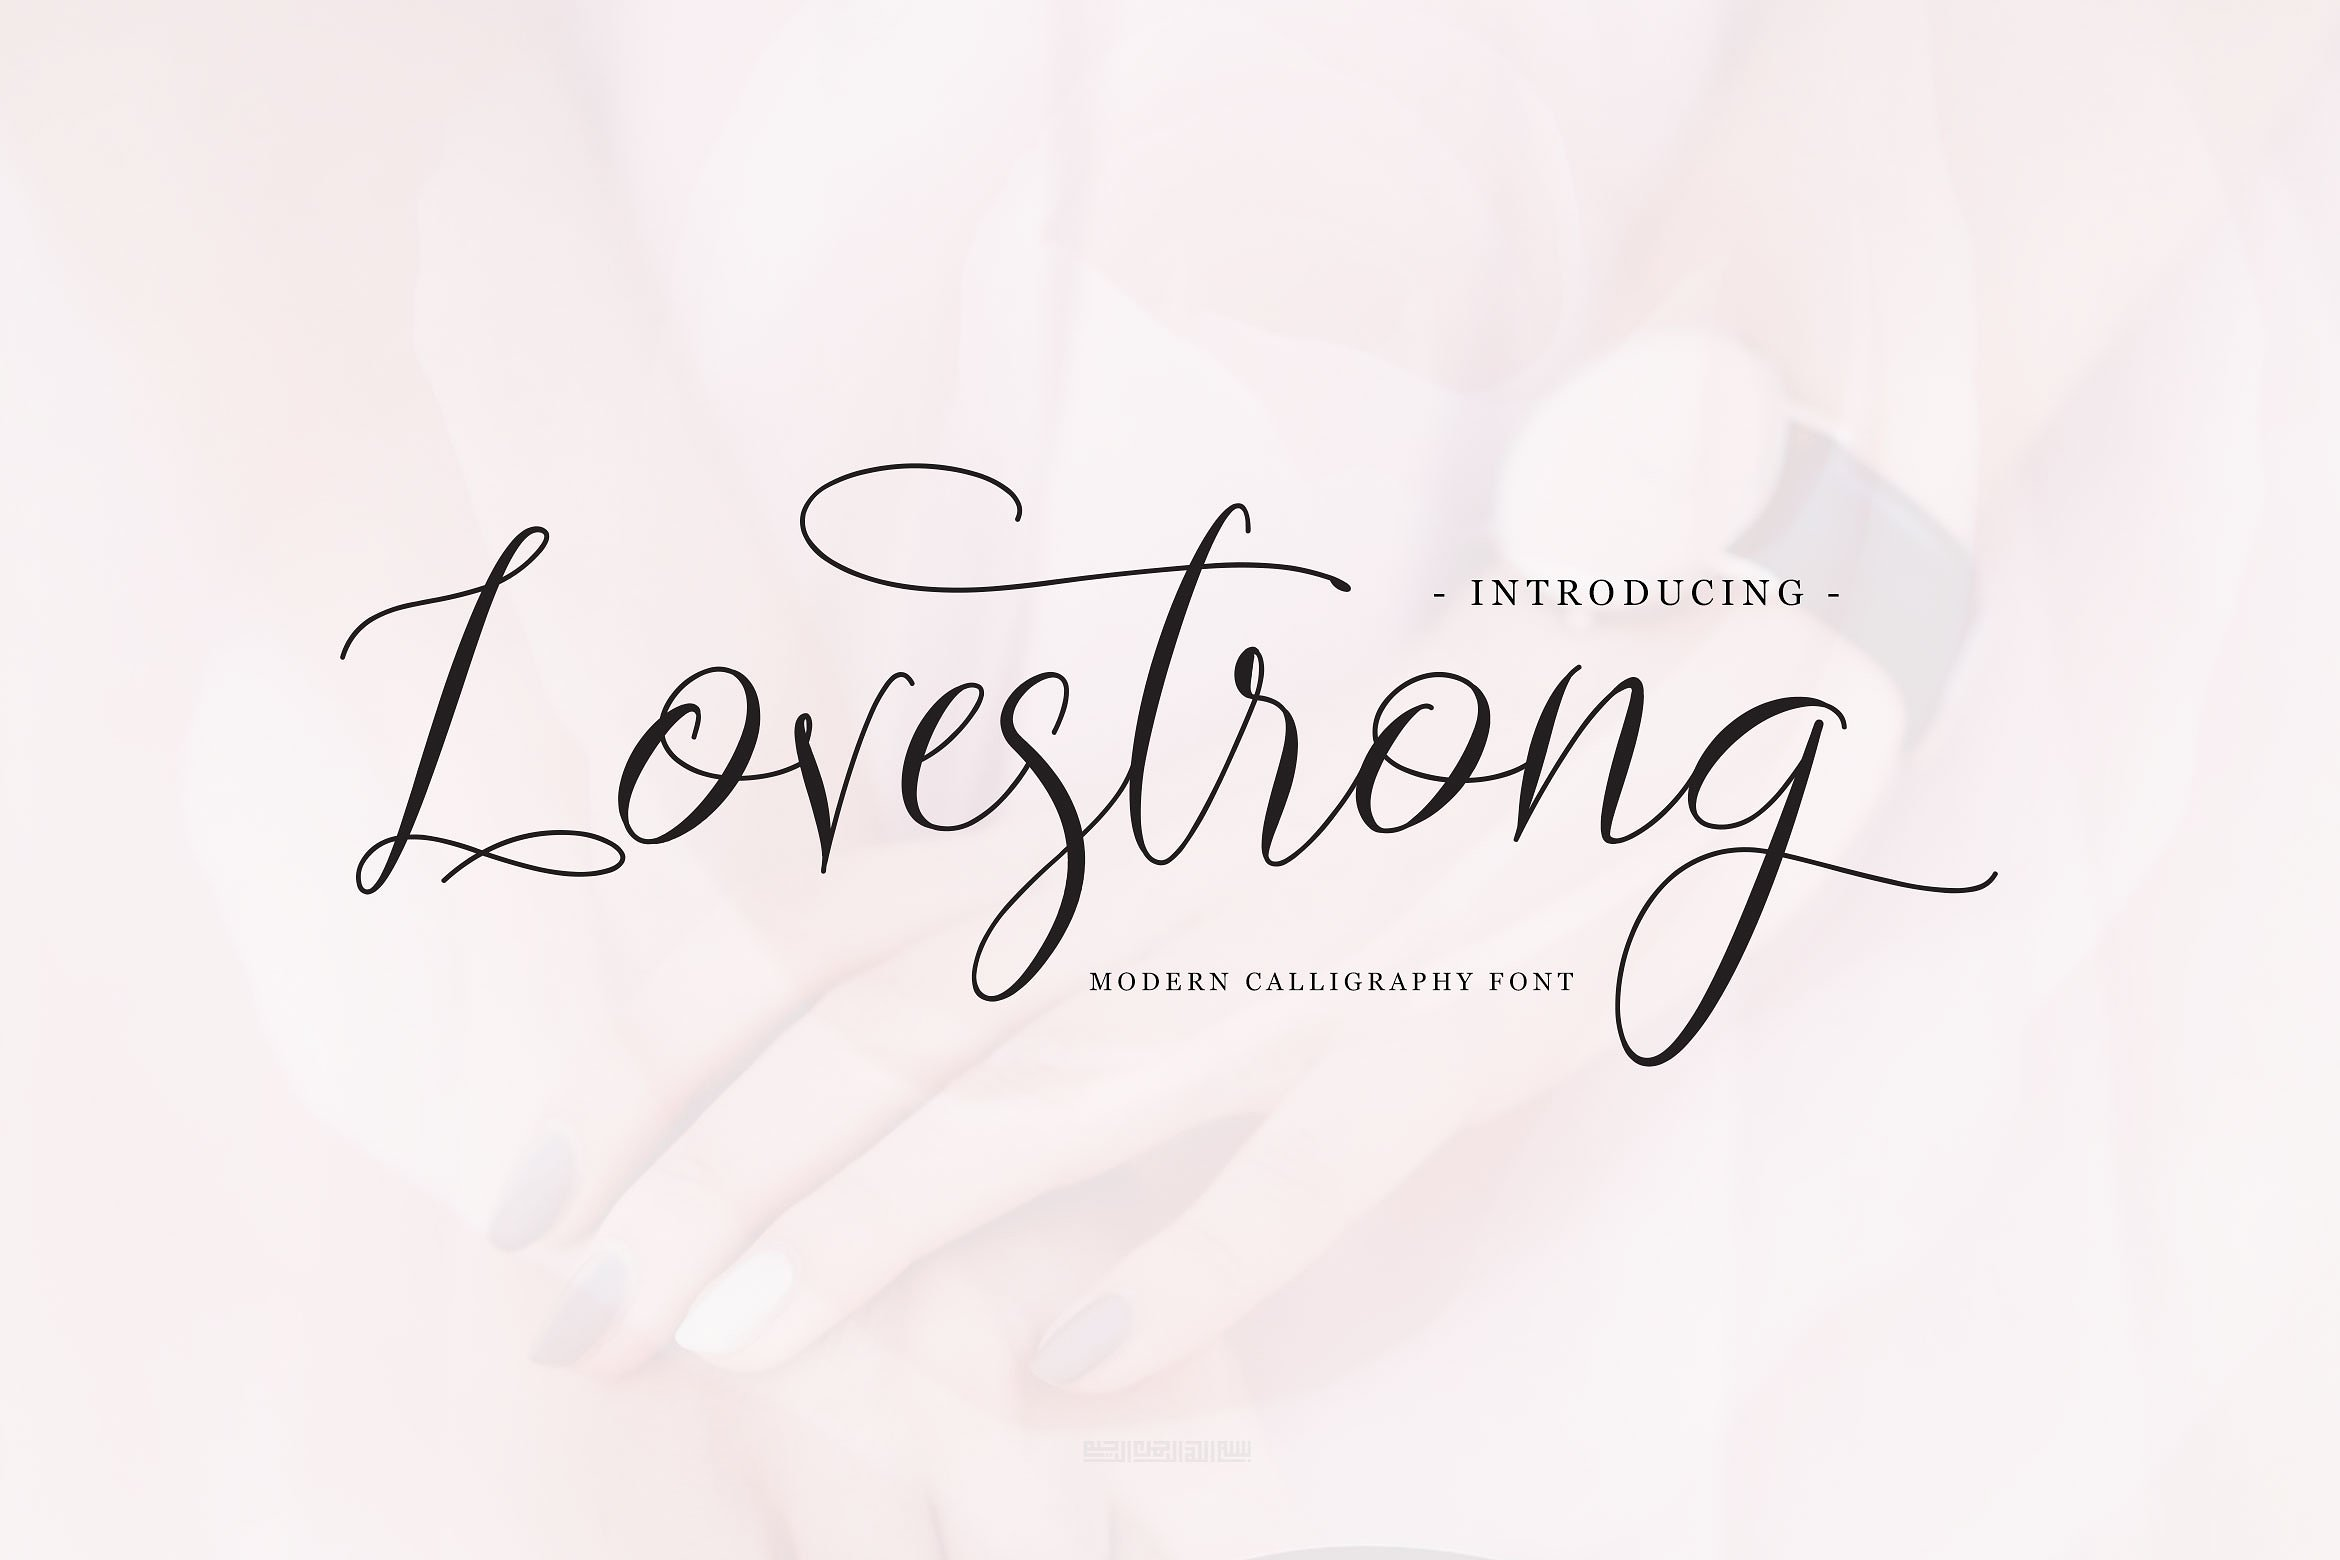 Lovestrong Calligraphy